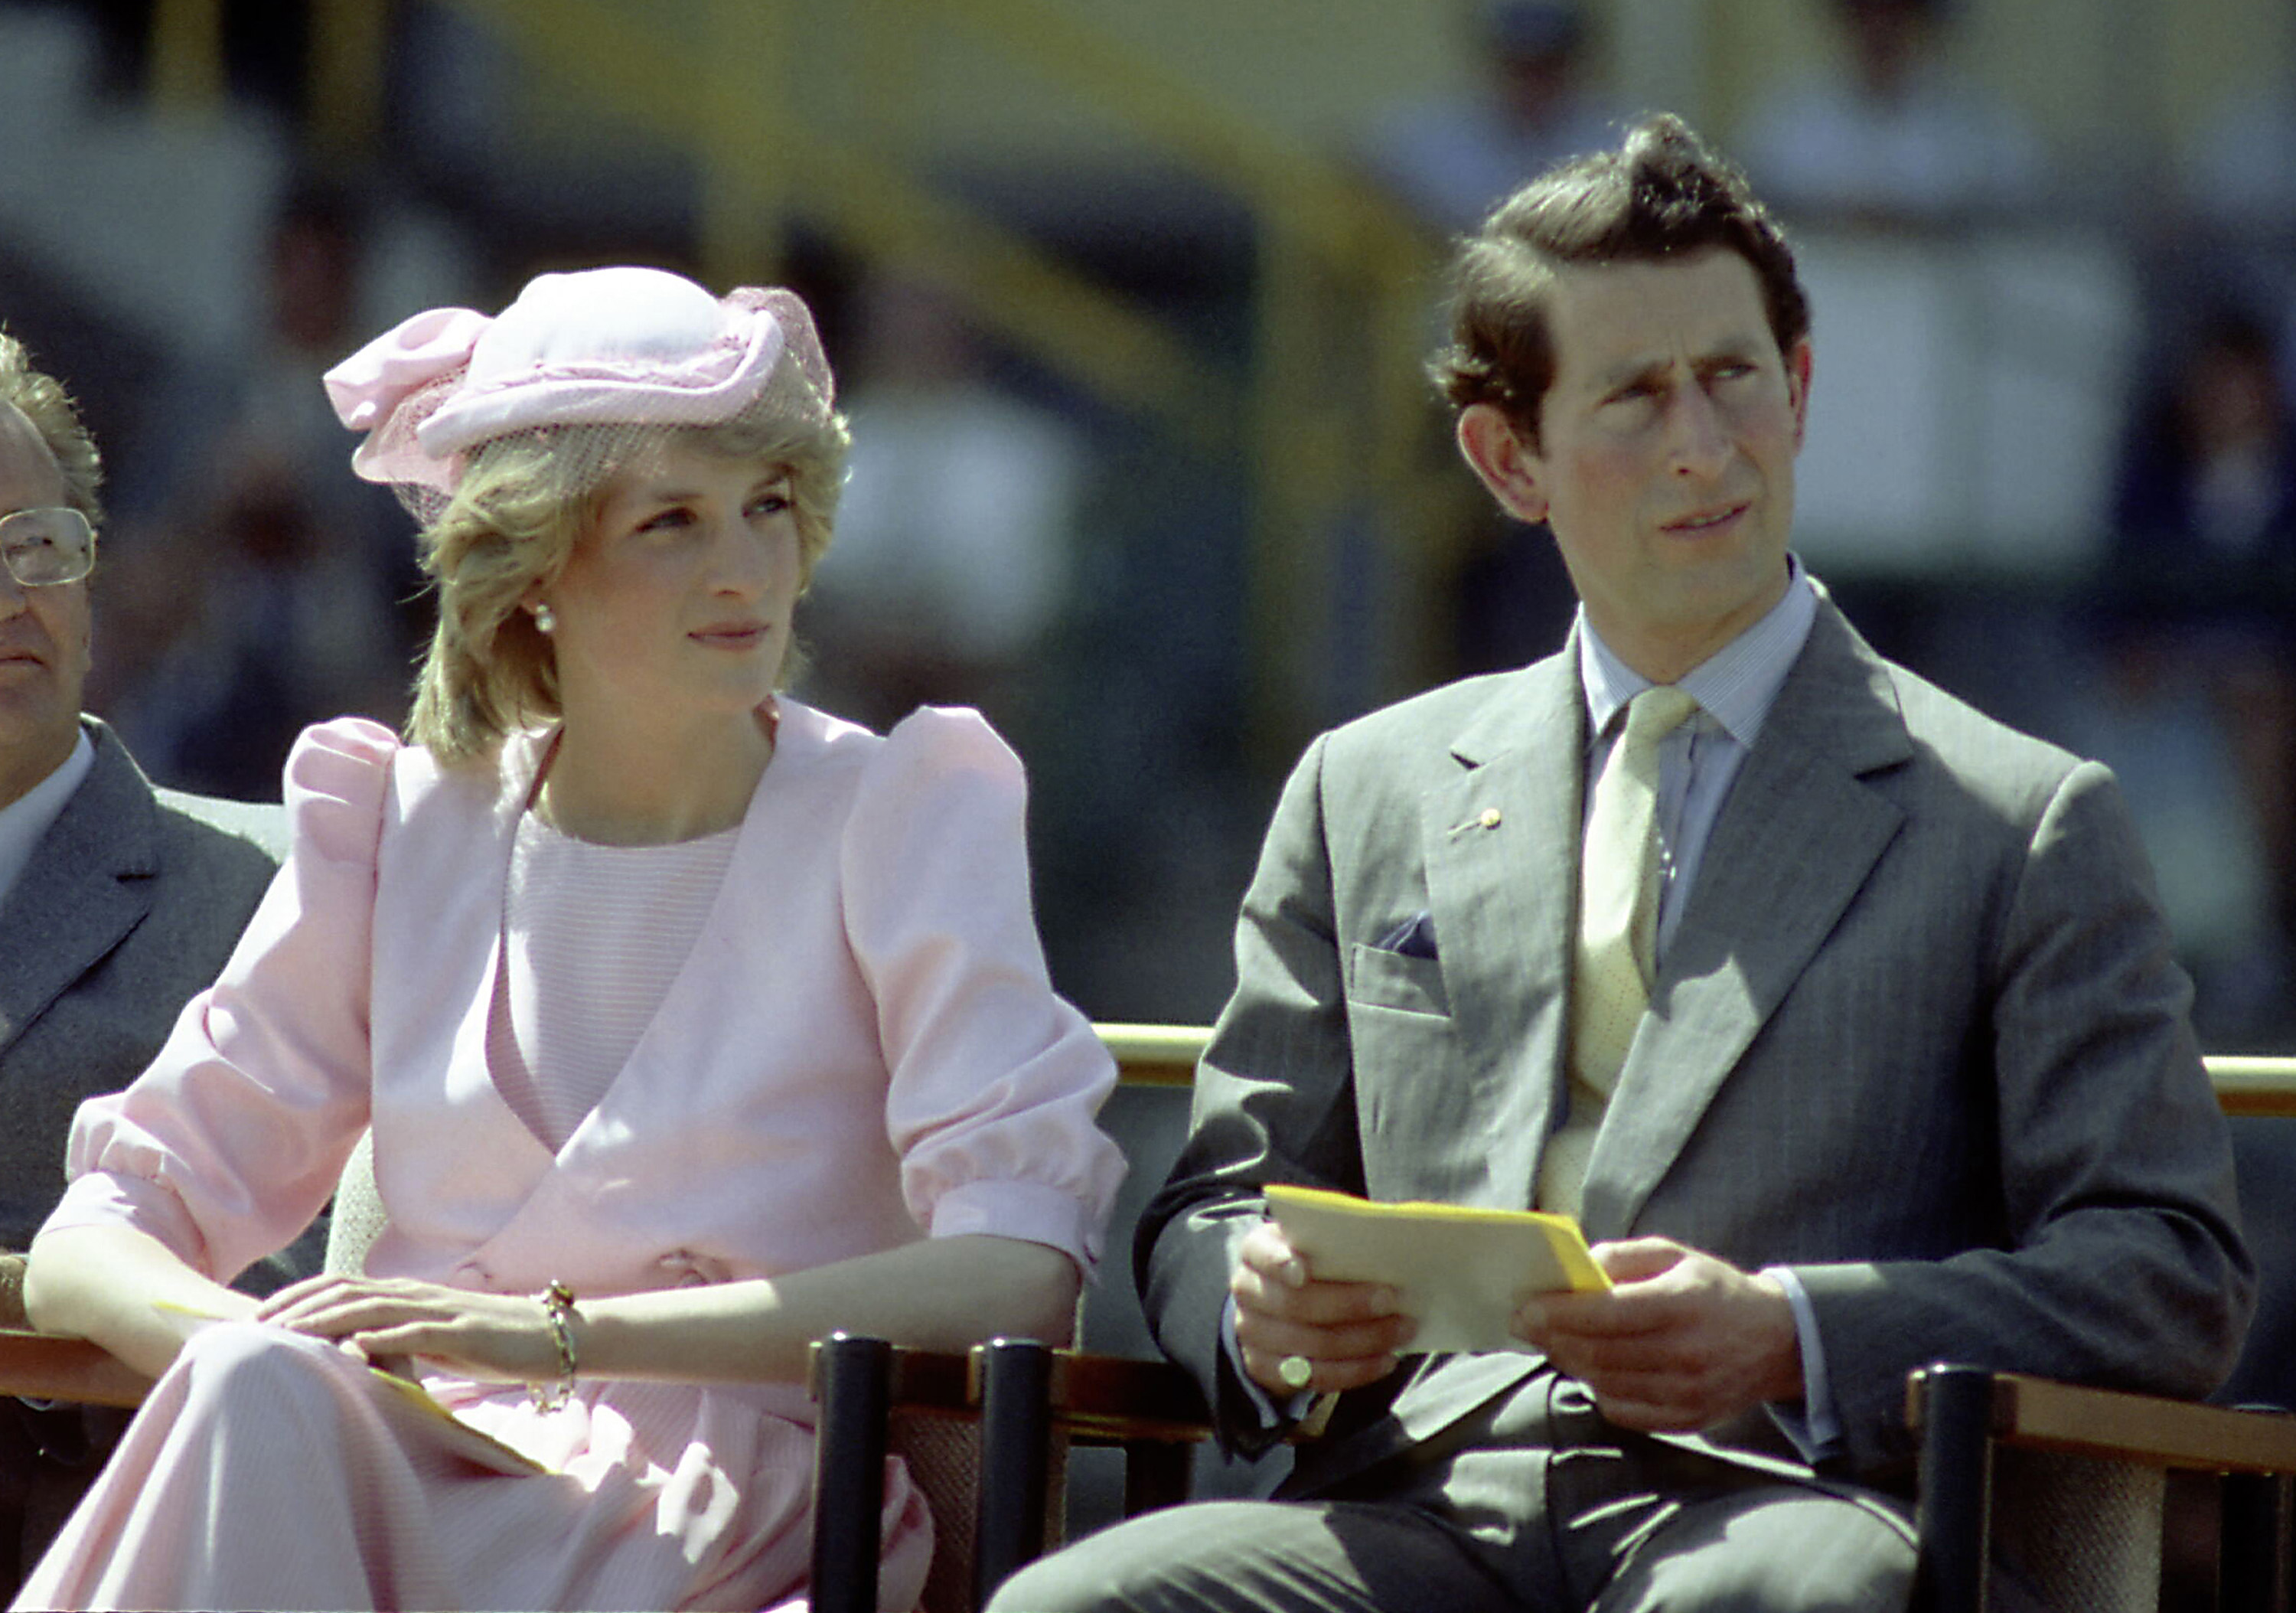 Princess Diana And Prince Charles watch an official event during their first royal Australian tour 1983 IN Newcastle, Austrlia. (Photo by Patrick Riviere/Getty Images)